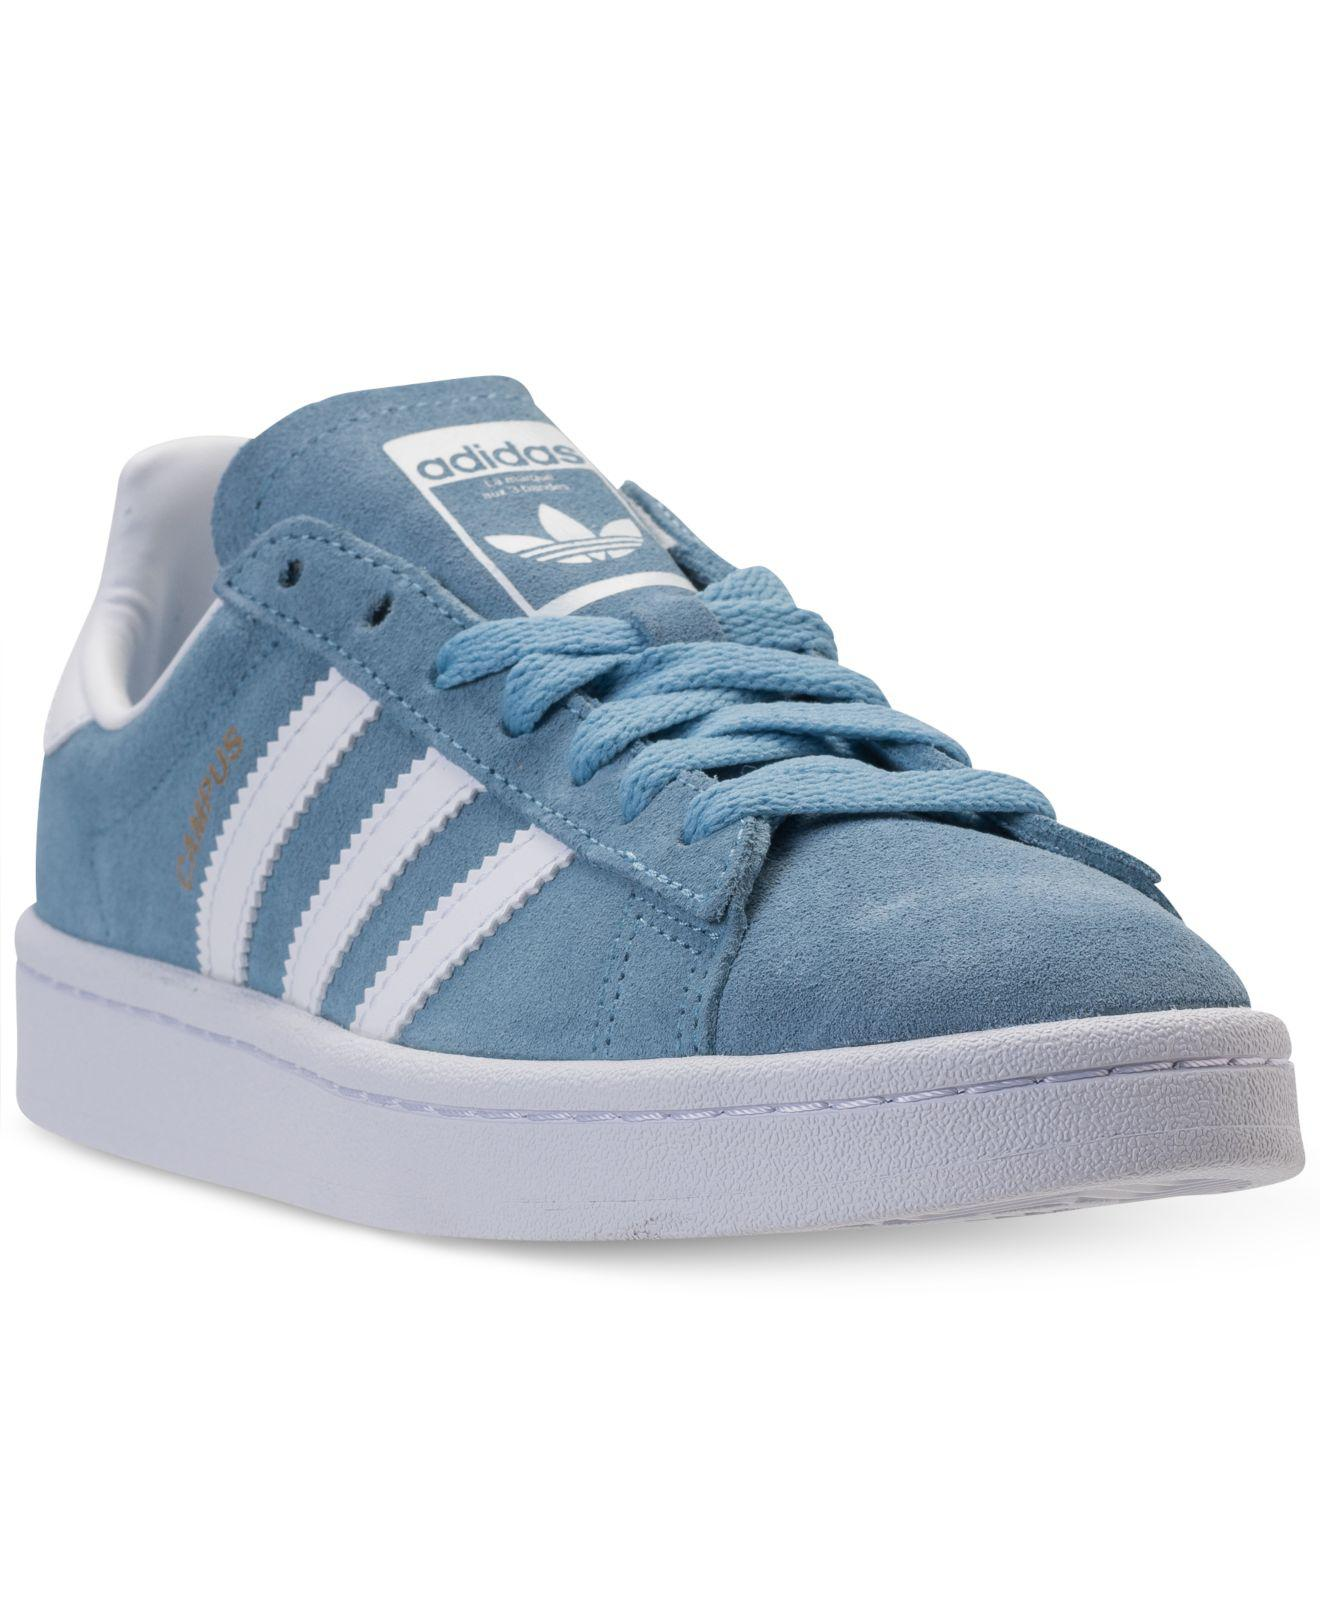 san francisco eb815 6fd54 Lyst - adidas Mens Campus Adicolor Casual Sneakers From Fini